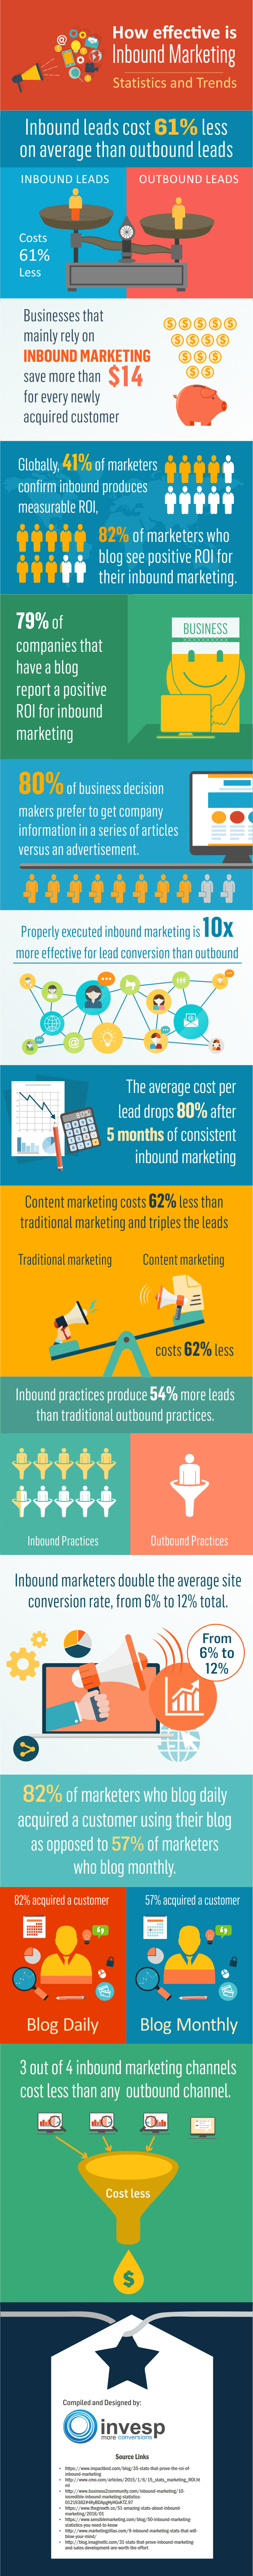 Inbound marketing - effectiveness